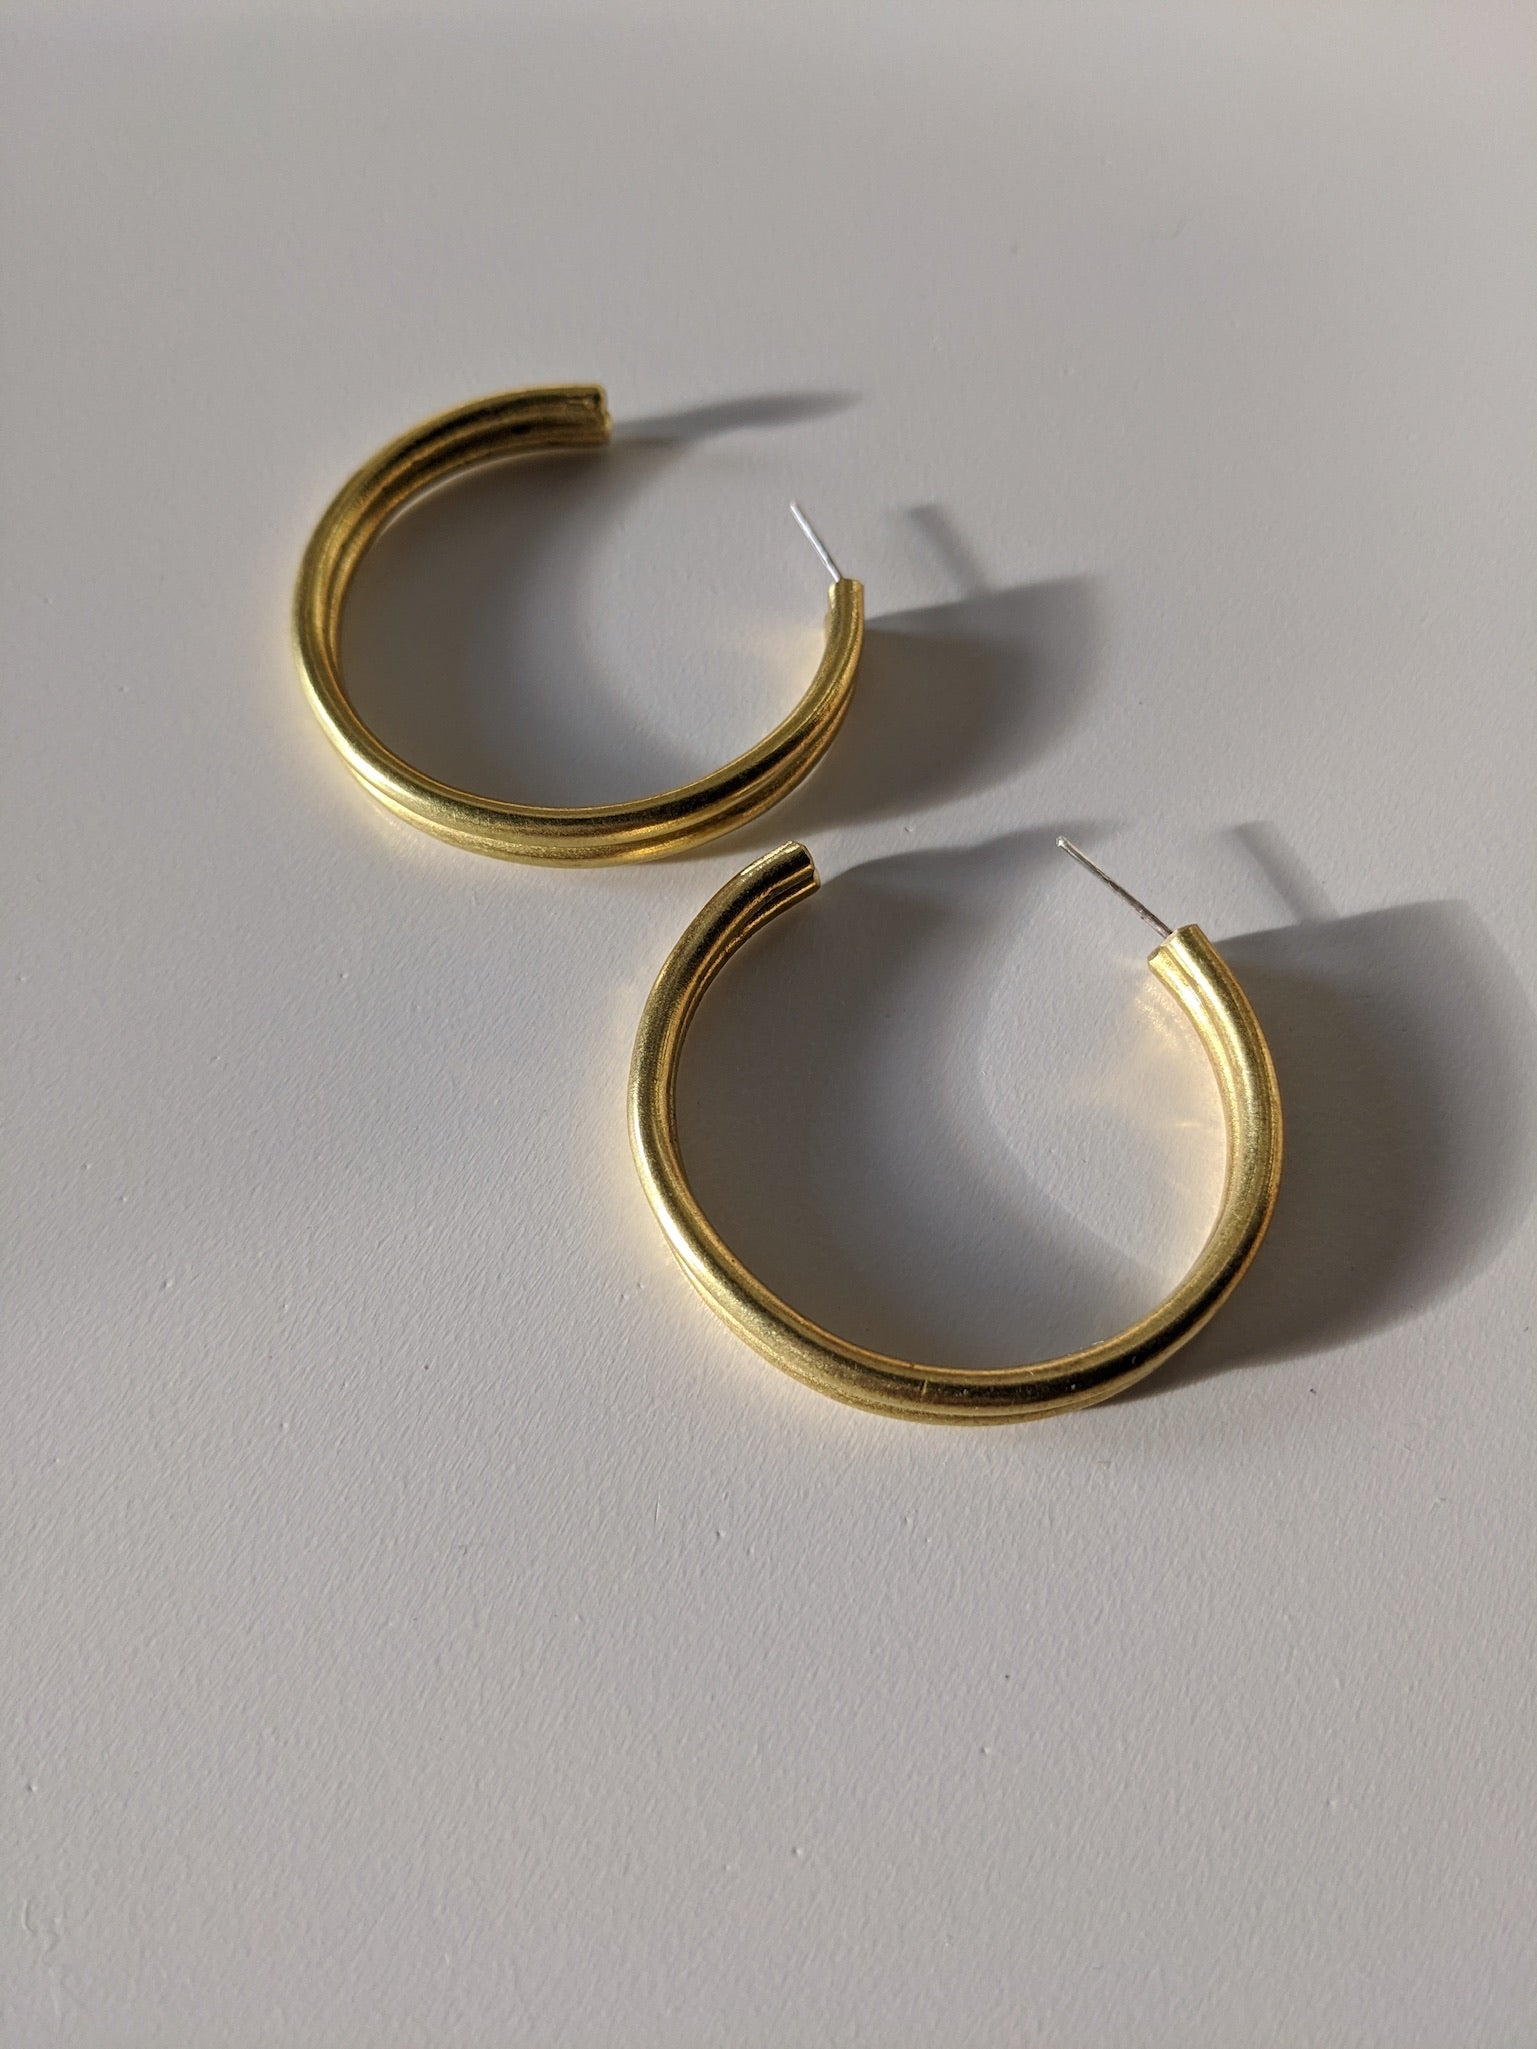 Mahnal Wahada Sumo Hoop Earrings